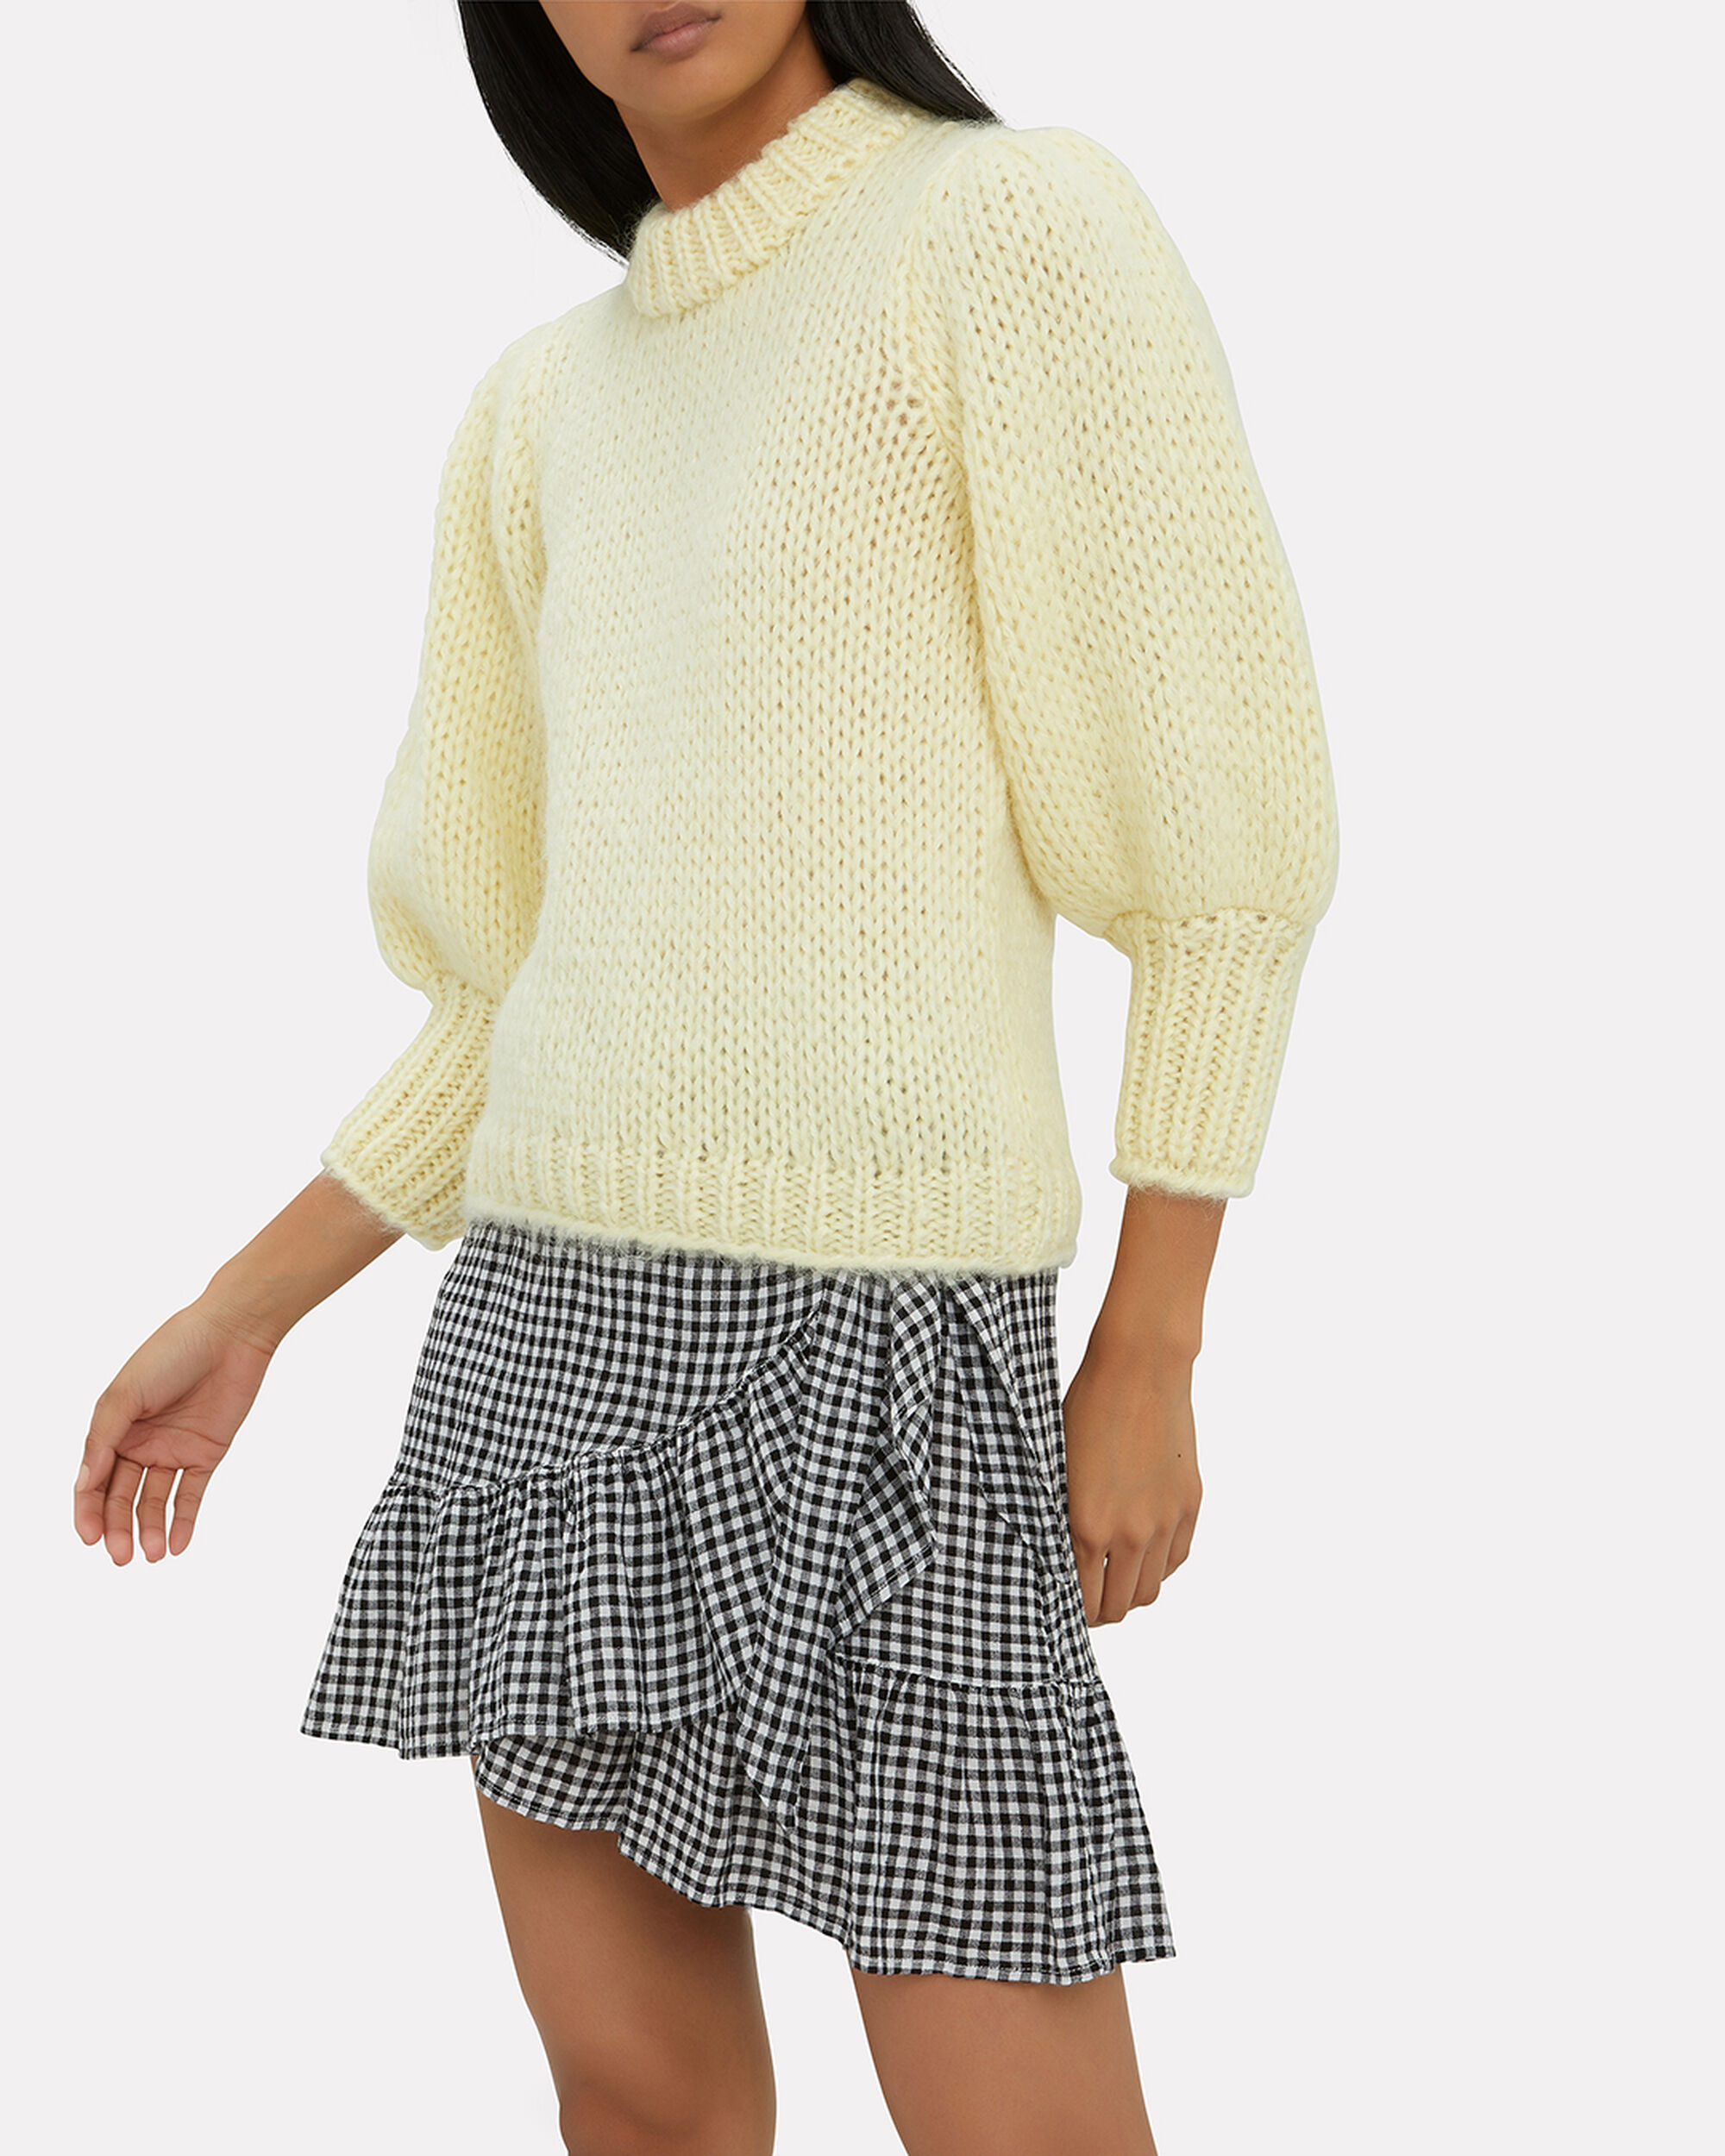 Julliard Sweater, IVORY, hi-res